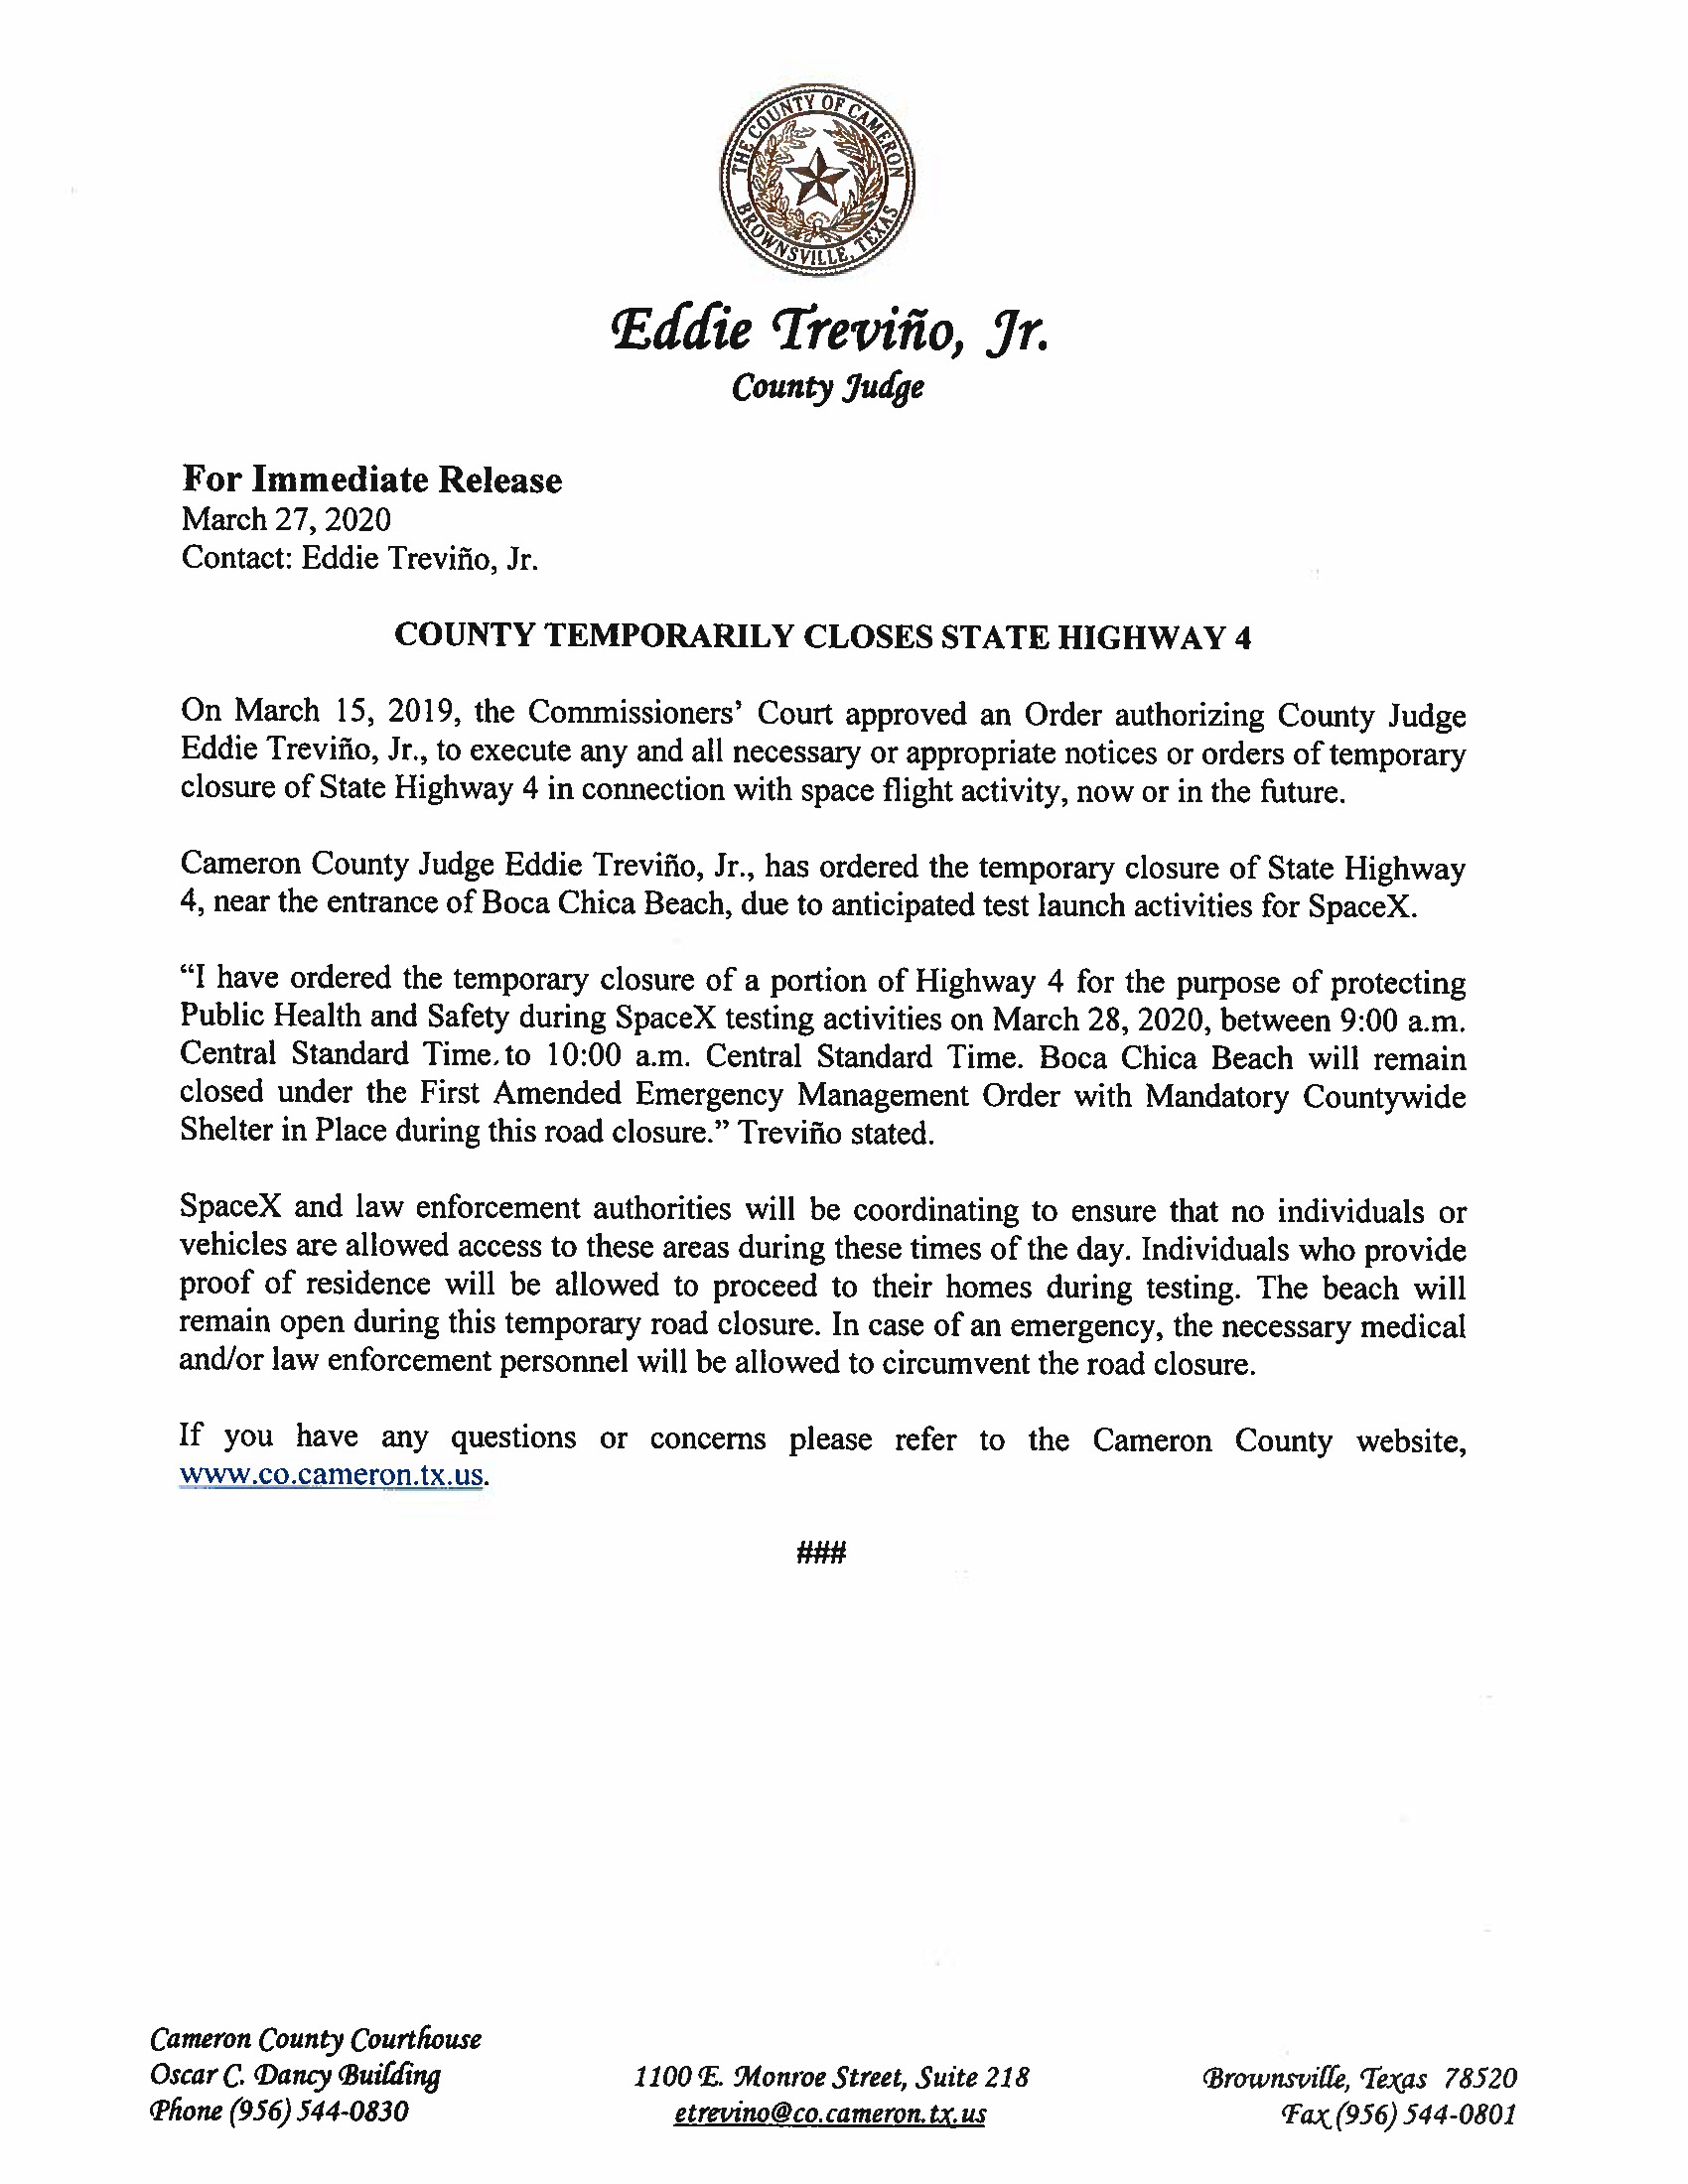 Press Release English Spanish For 03.28.2020.State Hwy 4 Closure Only Page 1